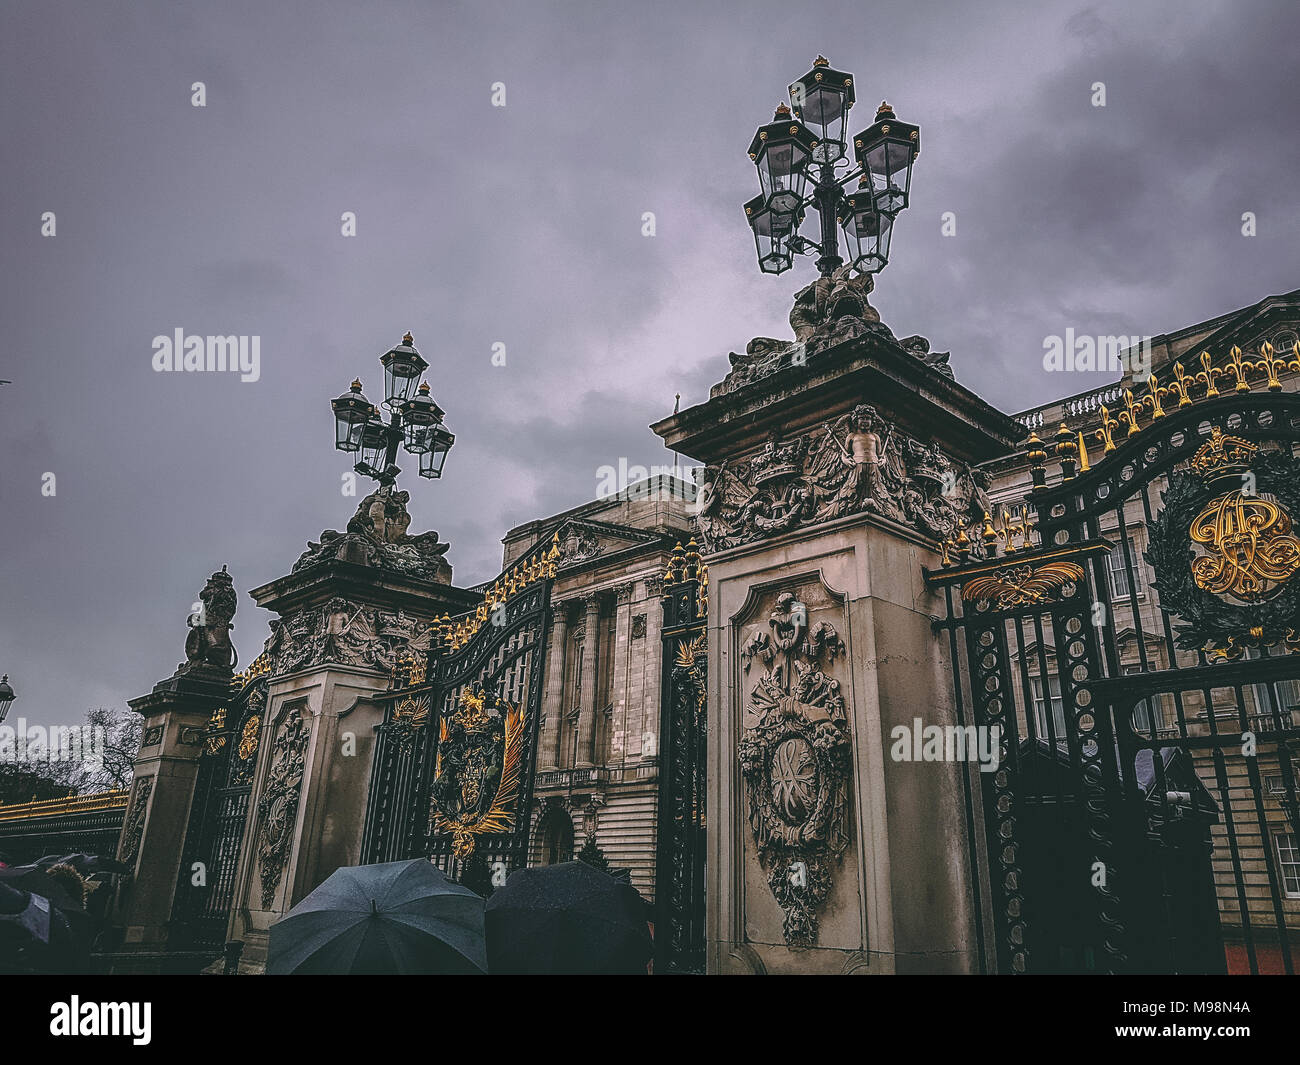 December 28th, 2017, London, England - gates of Buckingham Palace, the London residence and administrative headquarters of the monarch of the United K - Stock Image